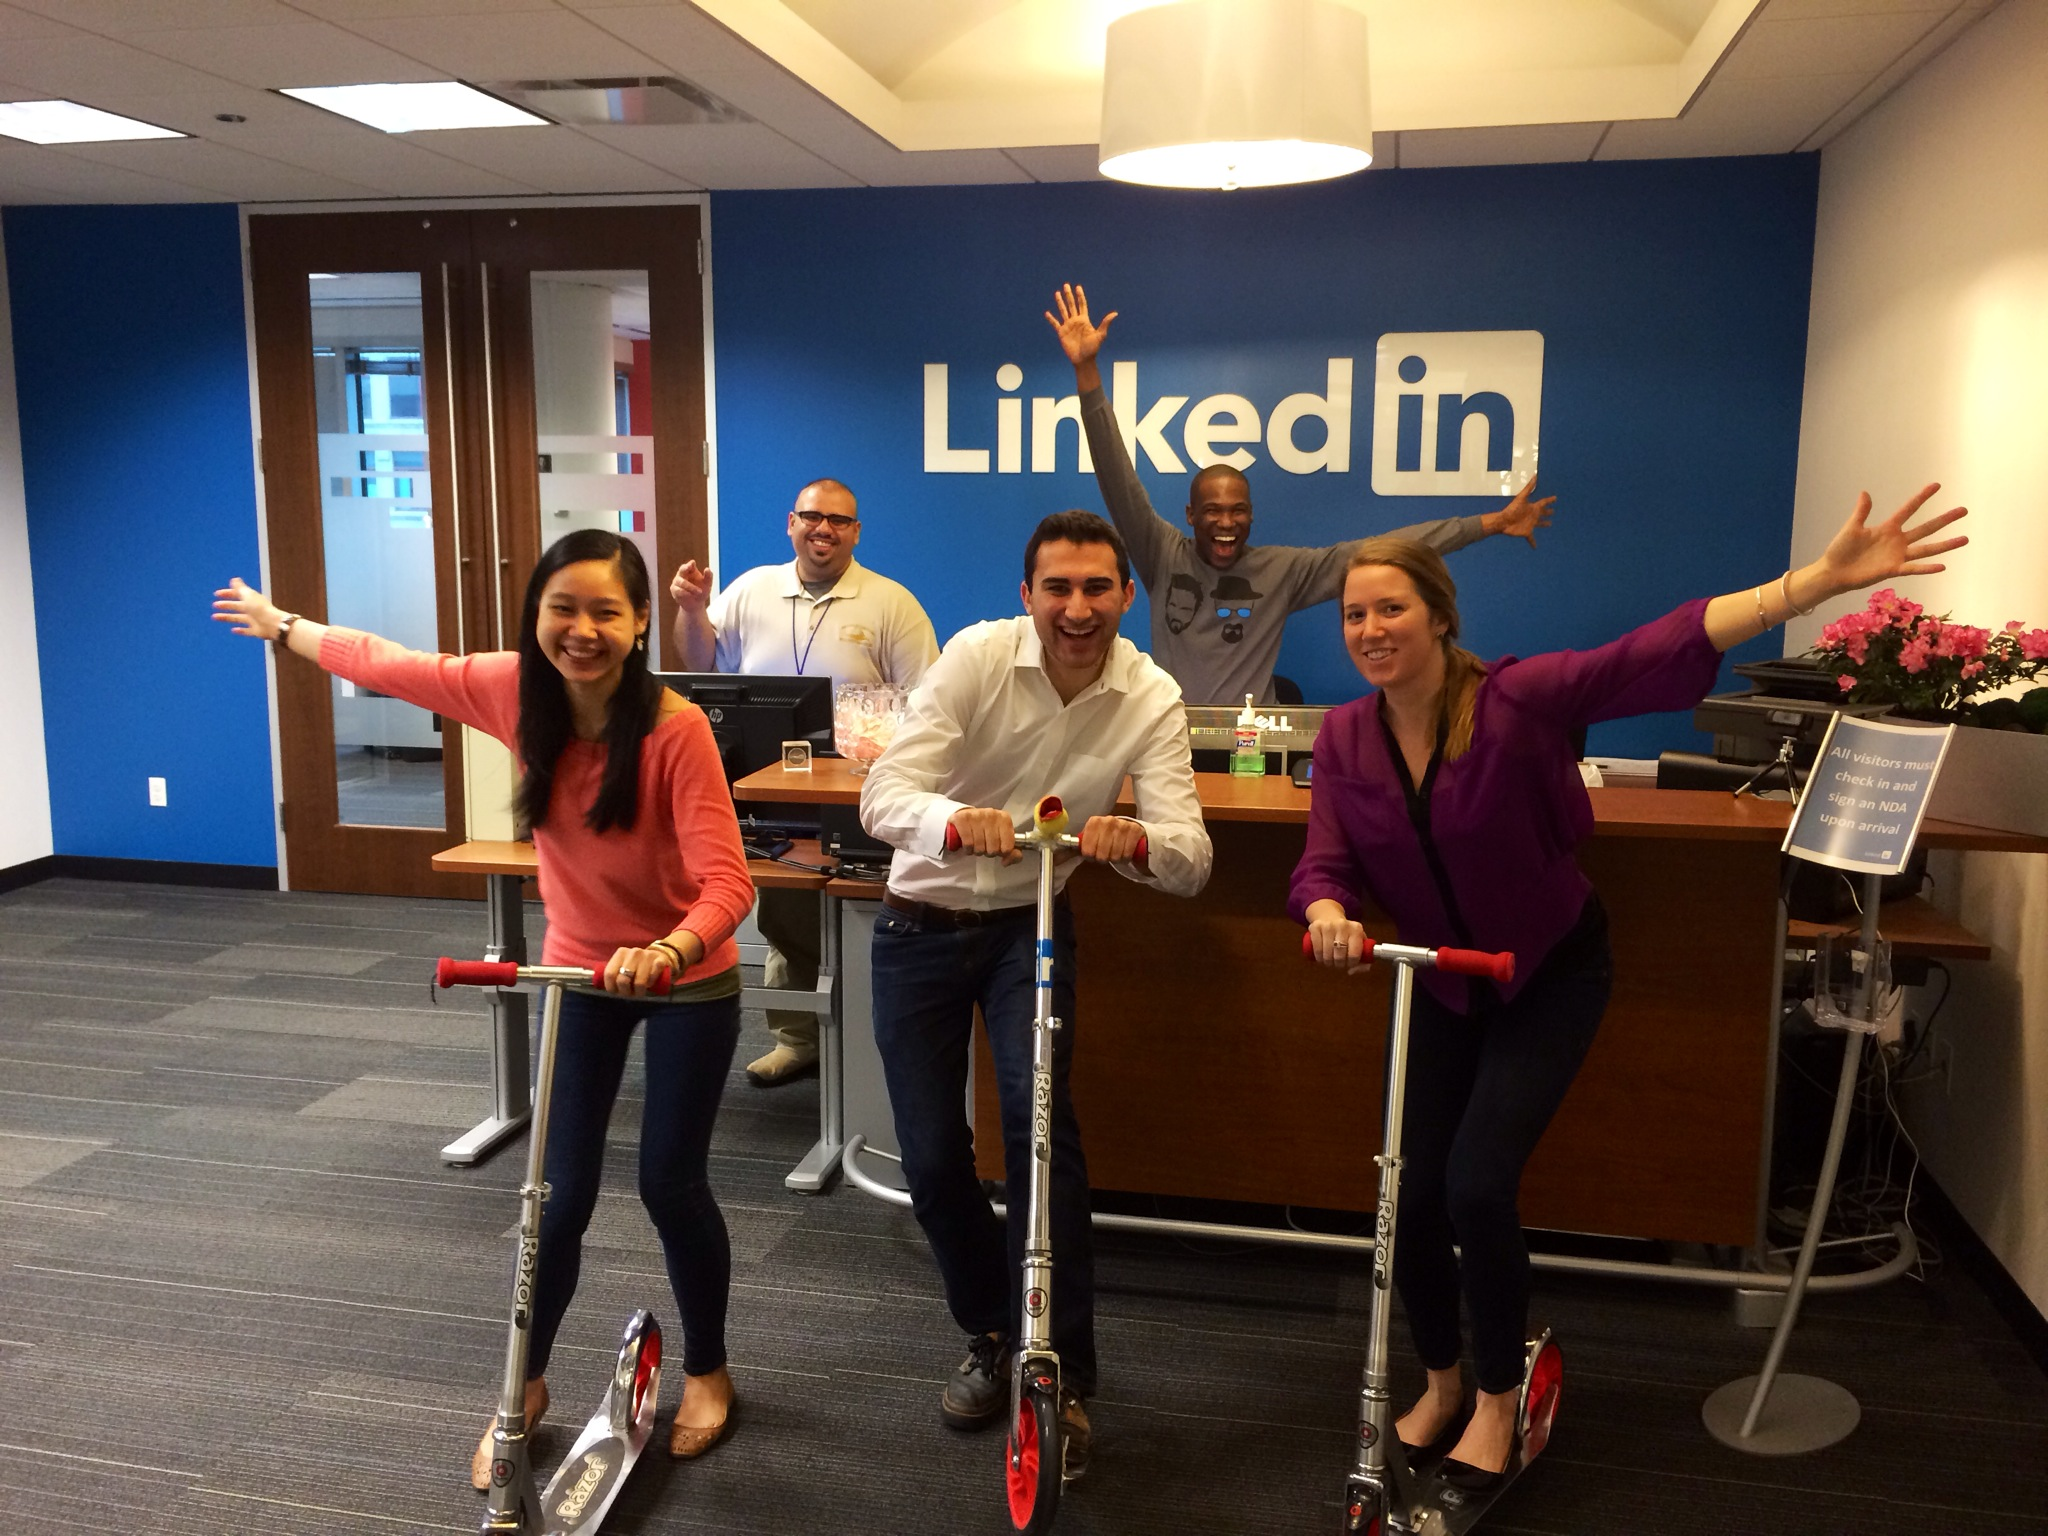 linkedin employees on scooters